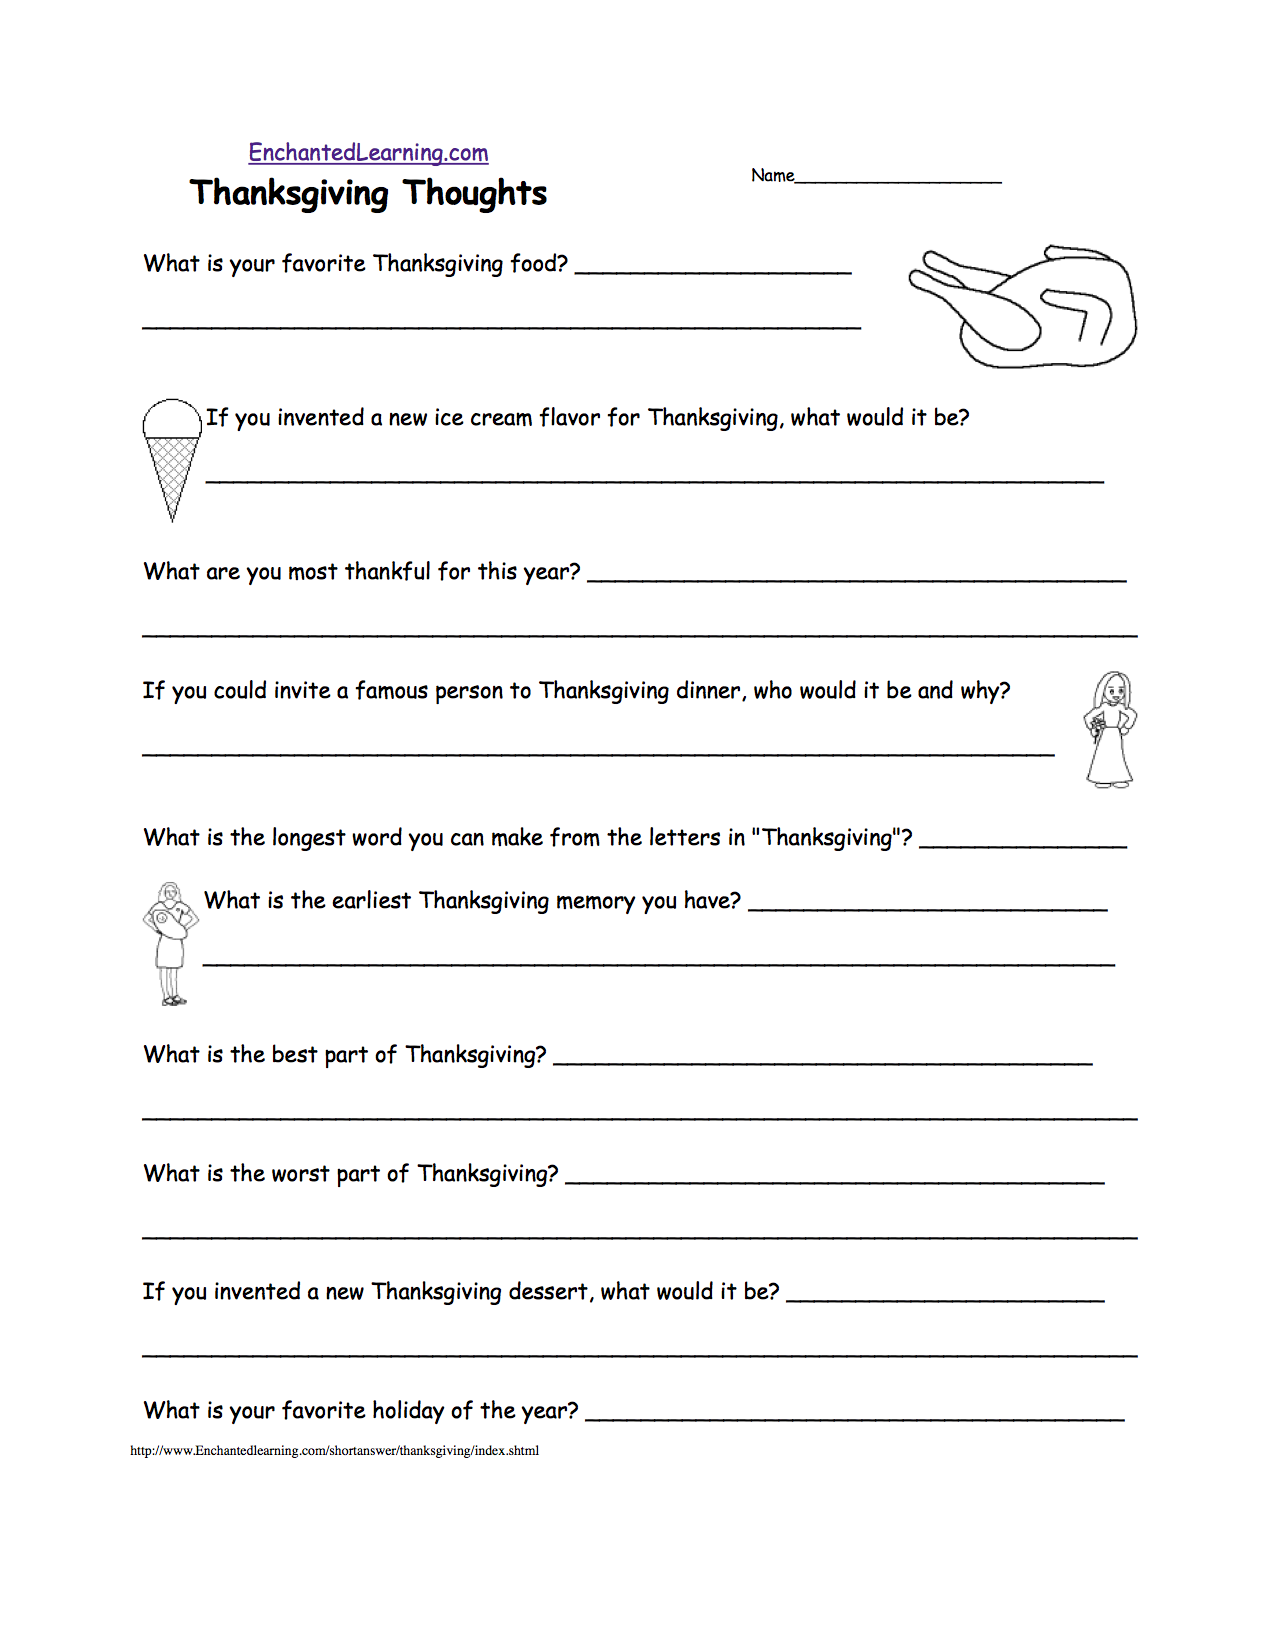 Thanksgiving Crafts, Worksheets, and Activities - EnchantedLearning.com